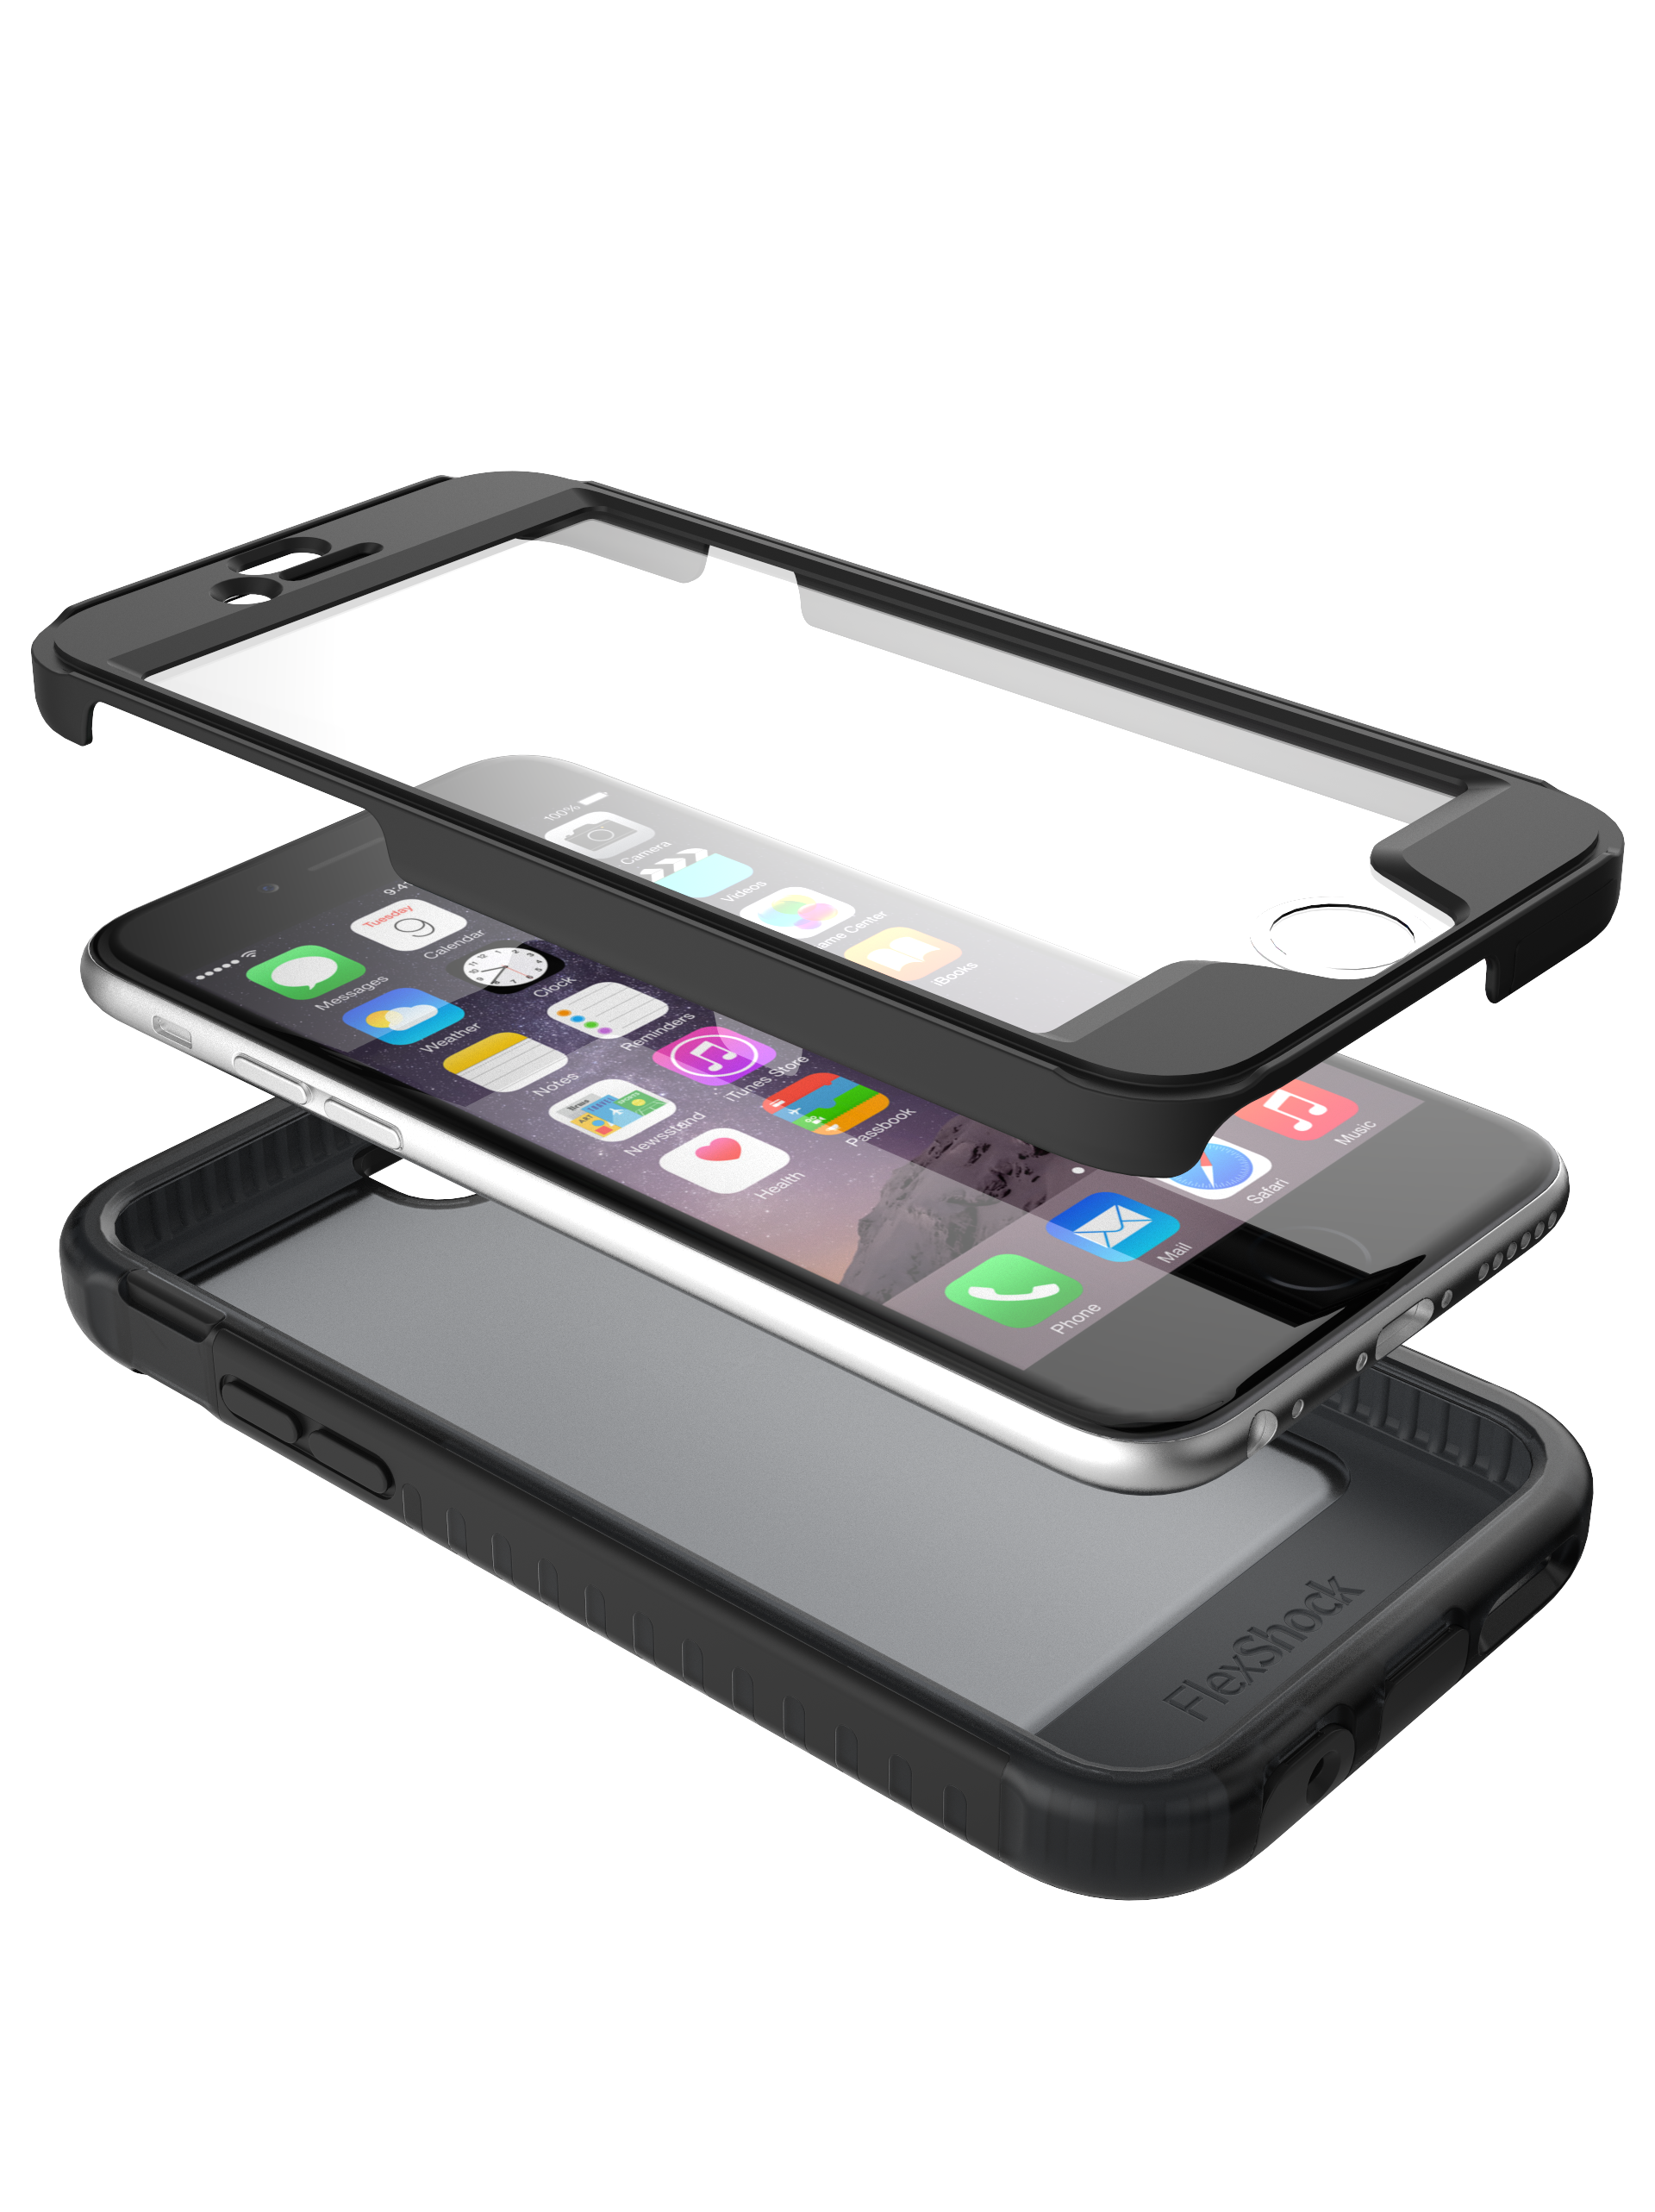 info for d5651 9811c REVIEWED: Tech21 Patriot protective case - Travgear.com